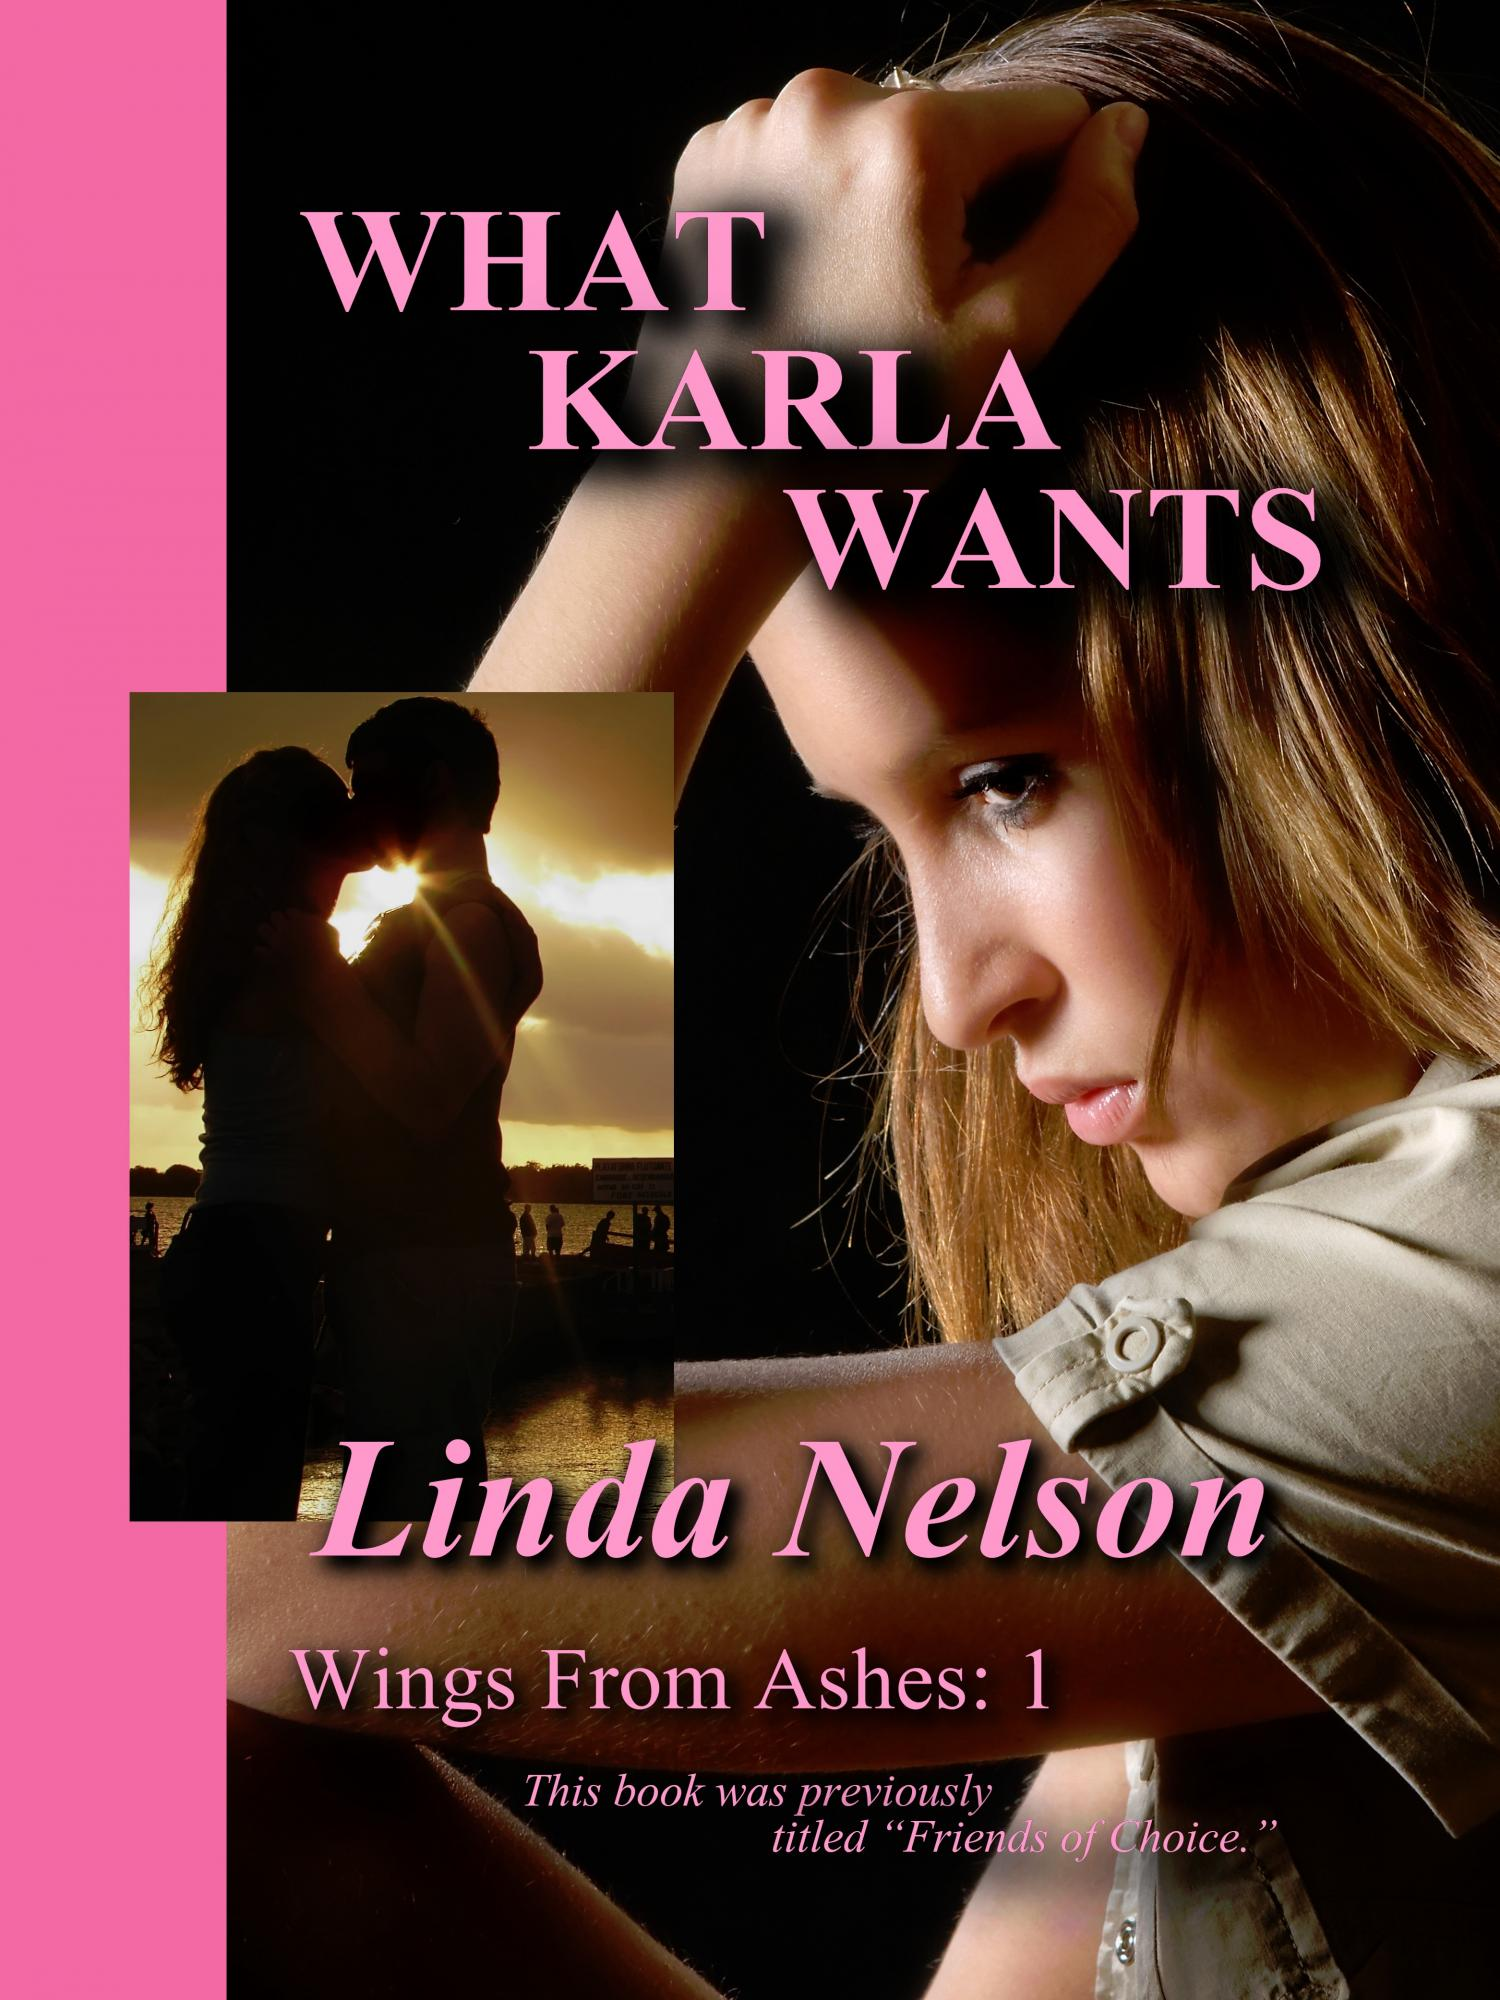 What Karla Wants (Wings from Ashes, 1)